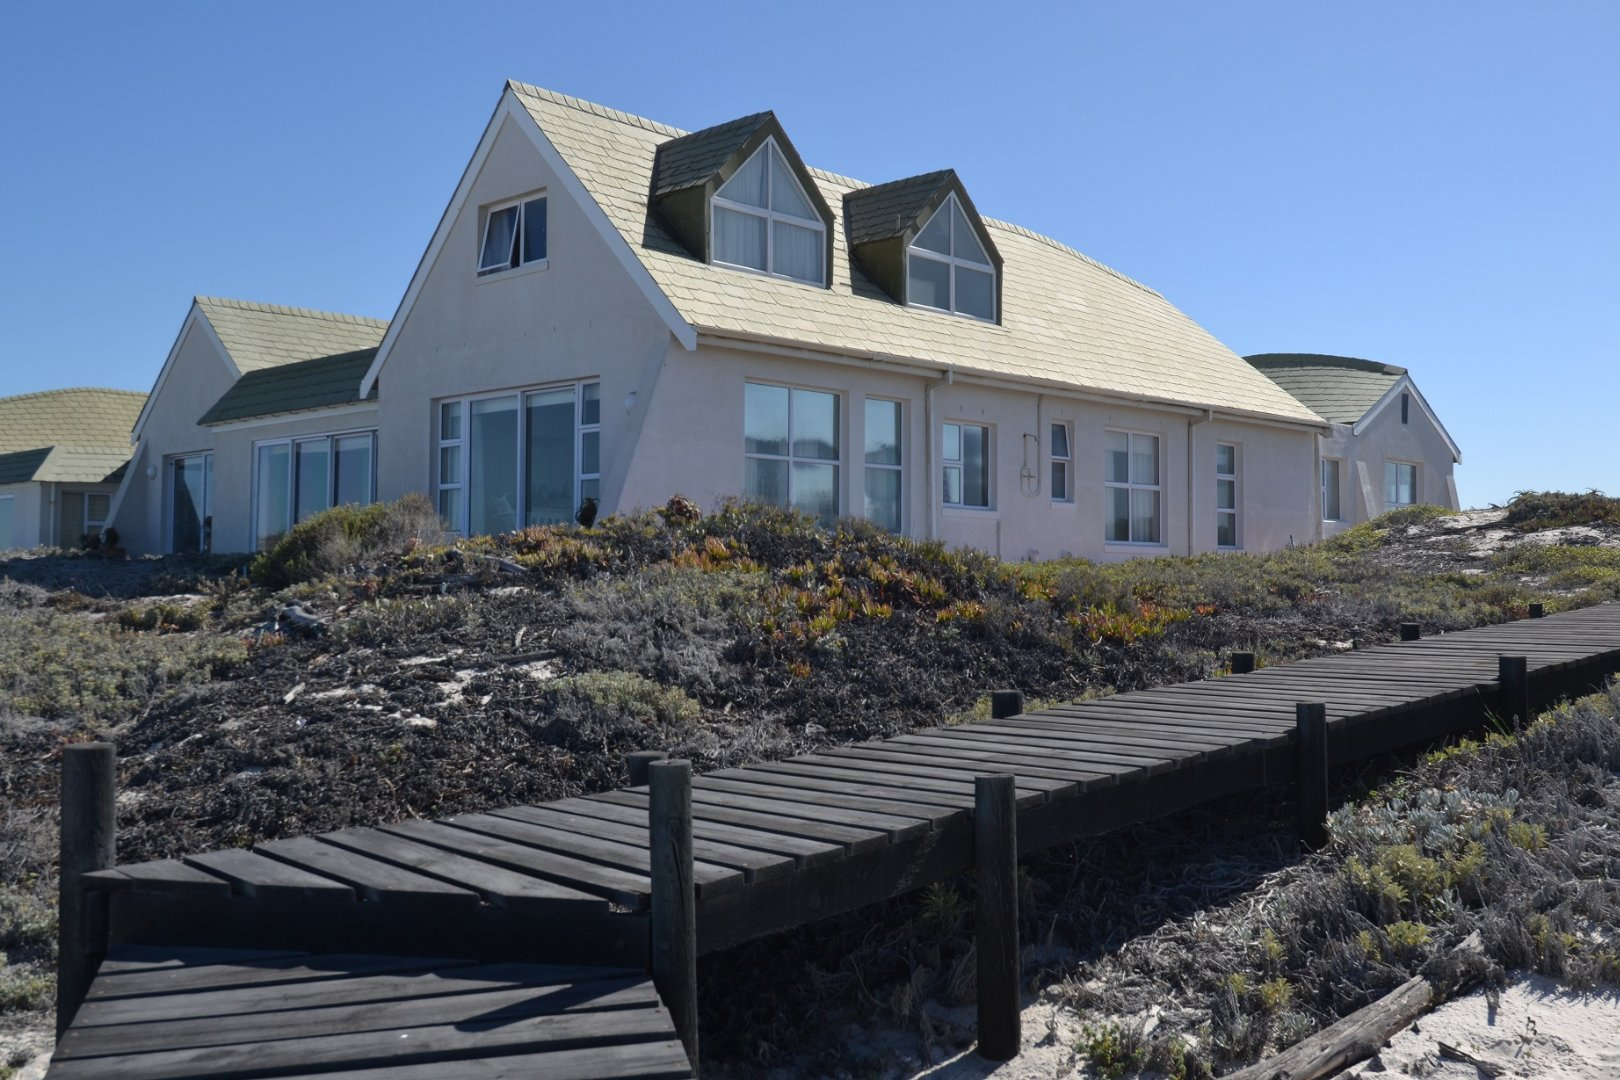 Yzerfontein, Jakkalsfontein Property  | Houses For Sale Jakkalsfontein, Jakkalsfontein, House 4 bedrooms property for sale Price:6,950,000